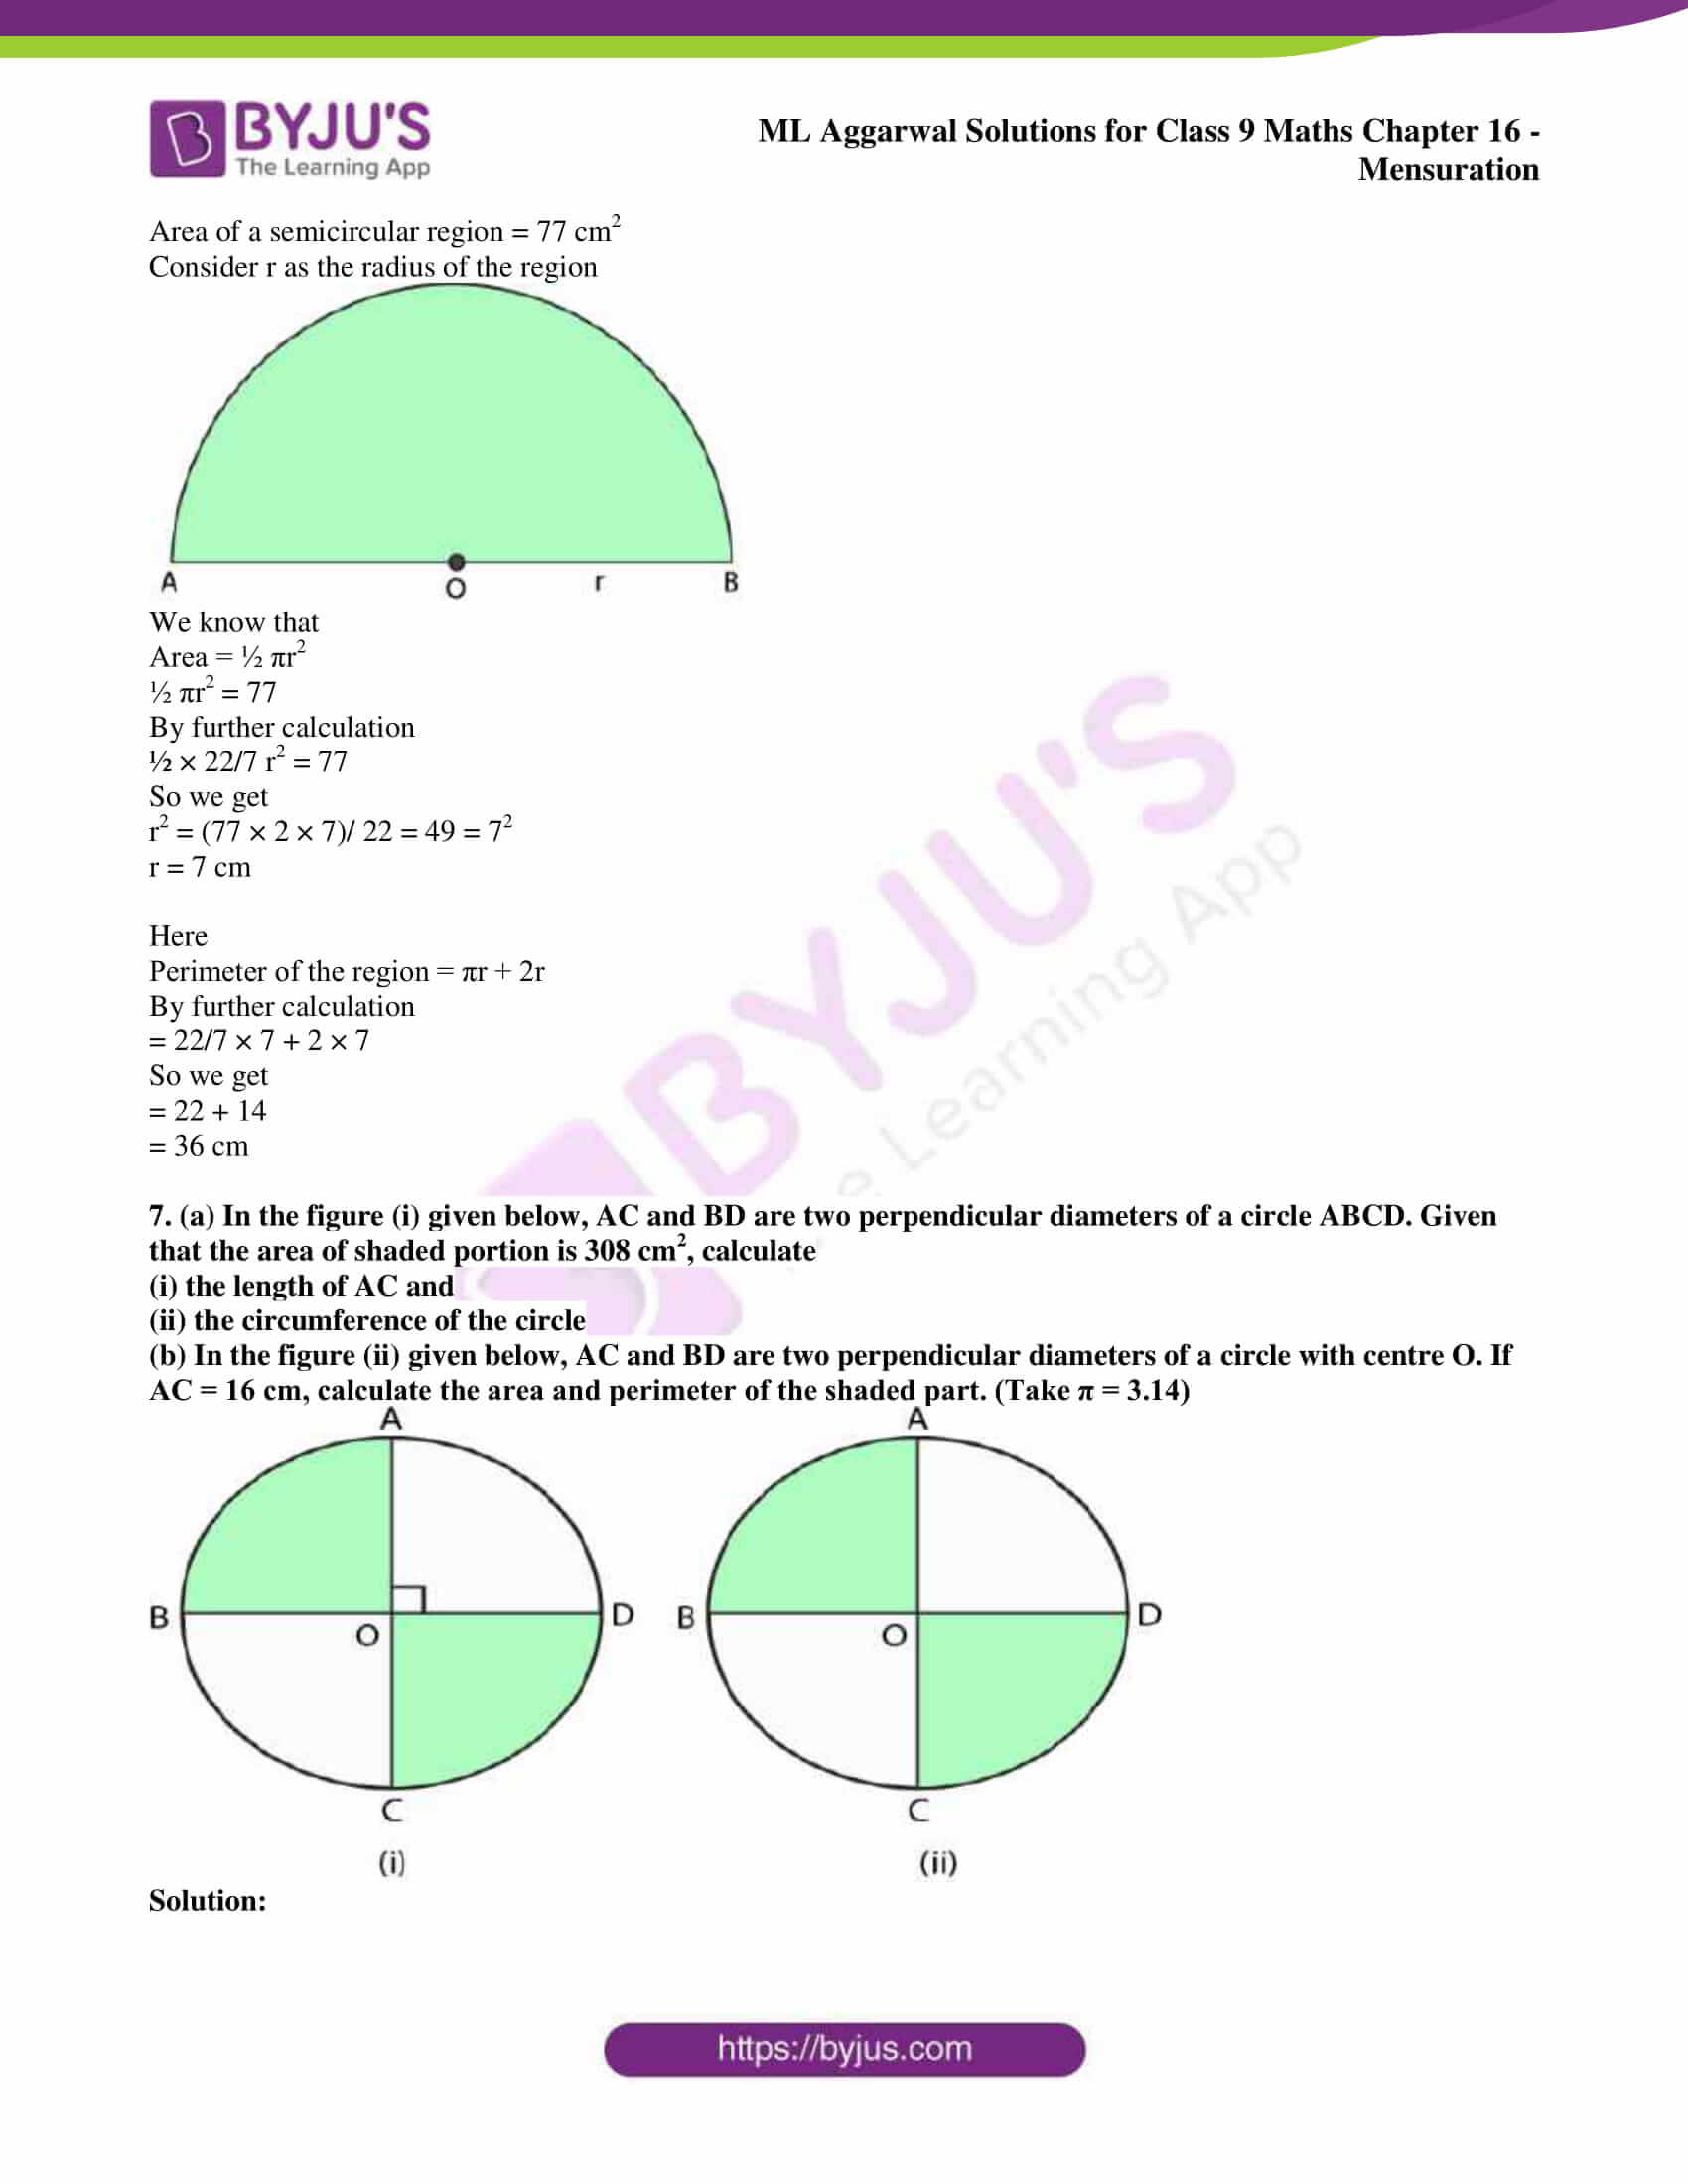 ml aggarwal solutions for class 9 maths chapter 16 076